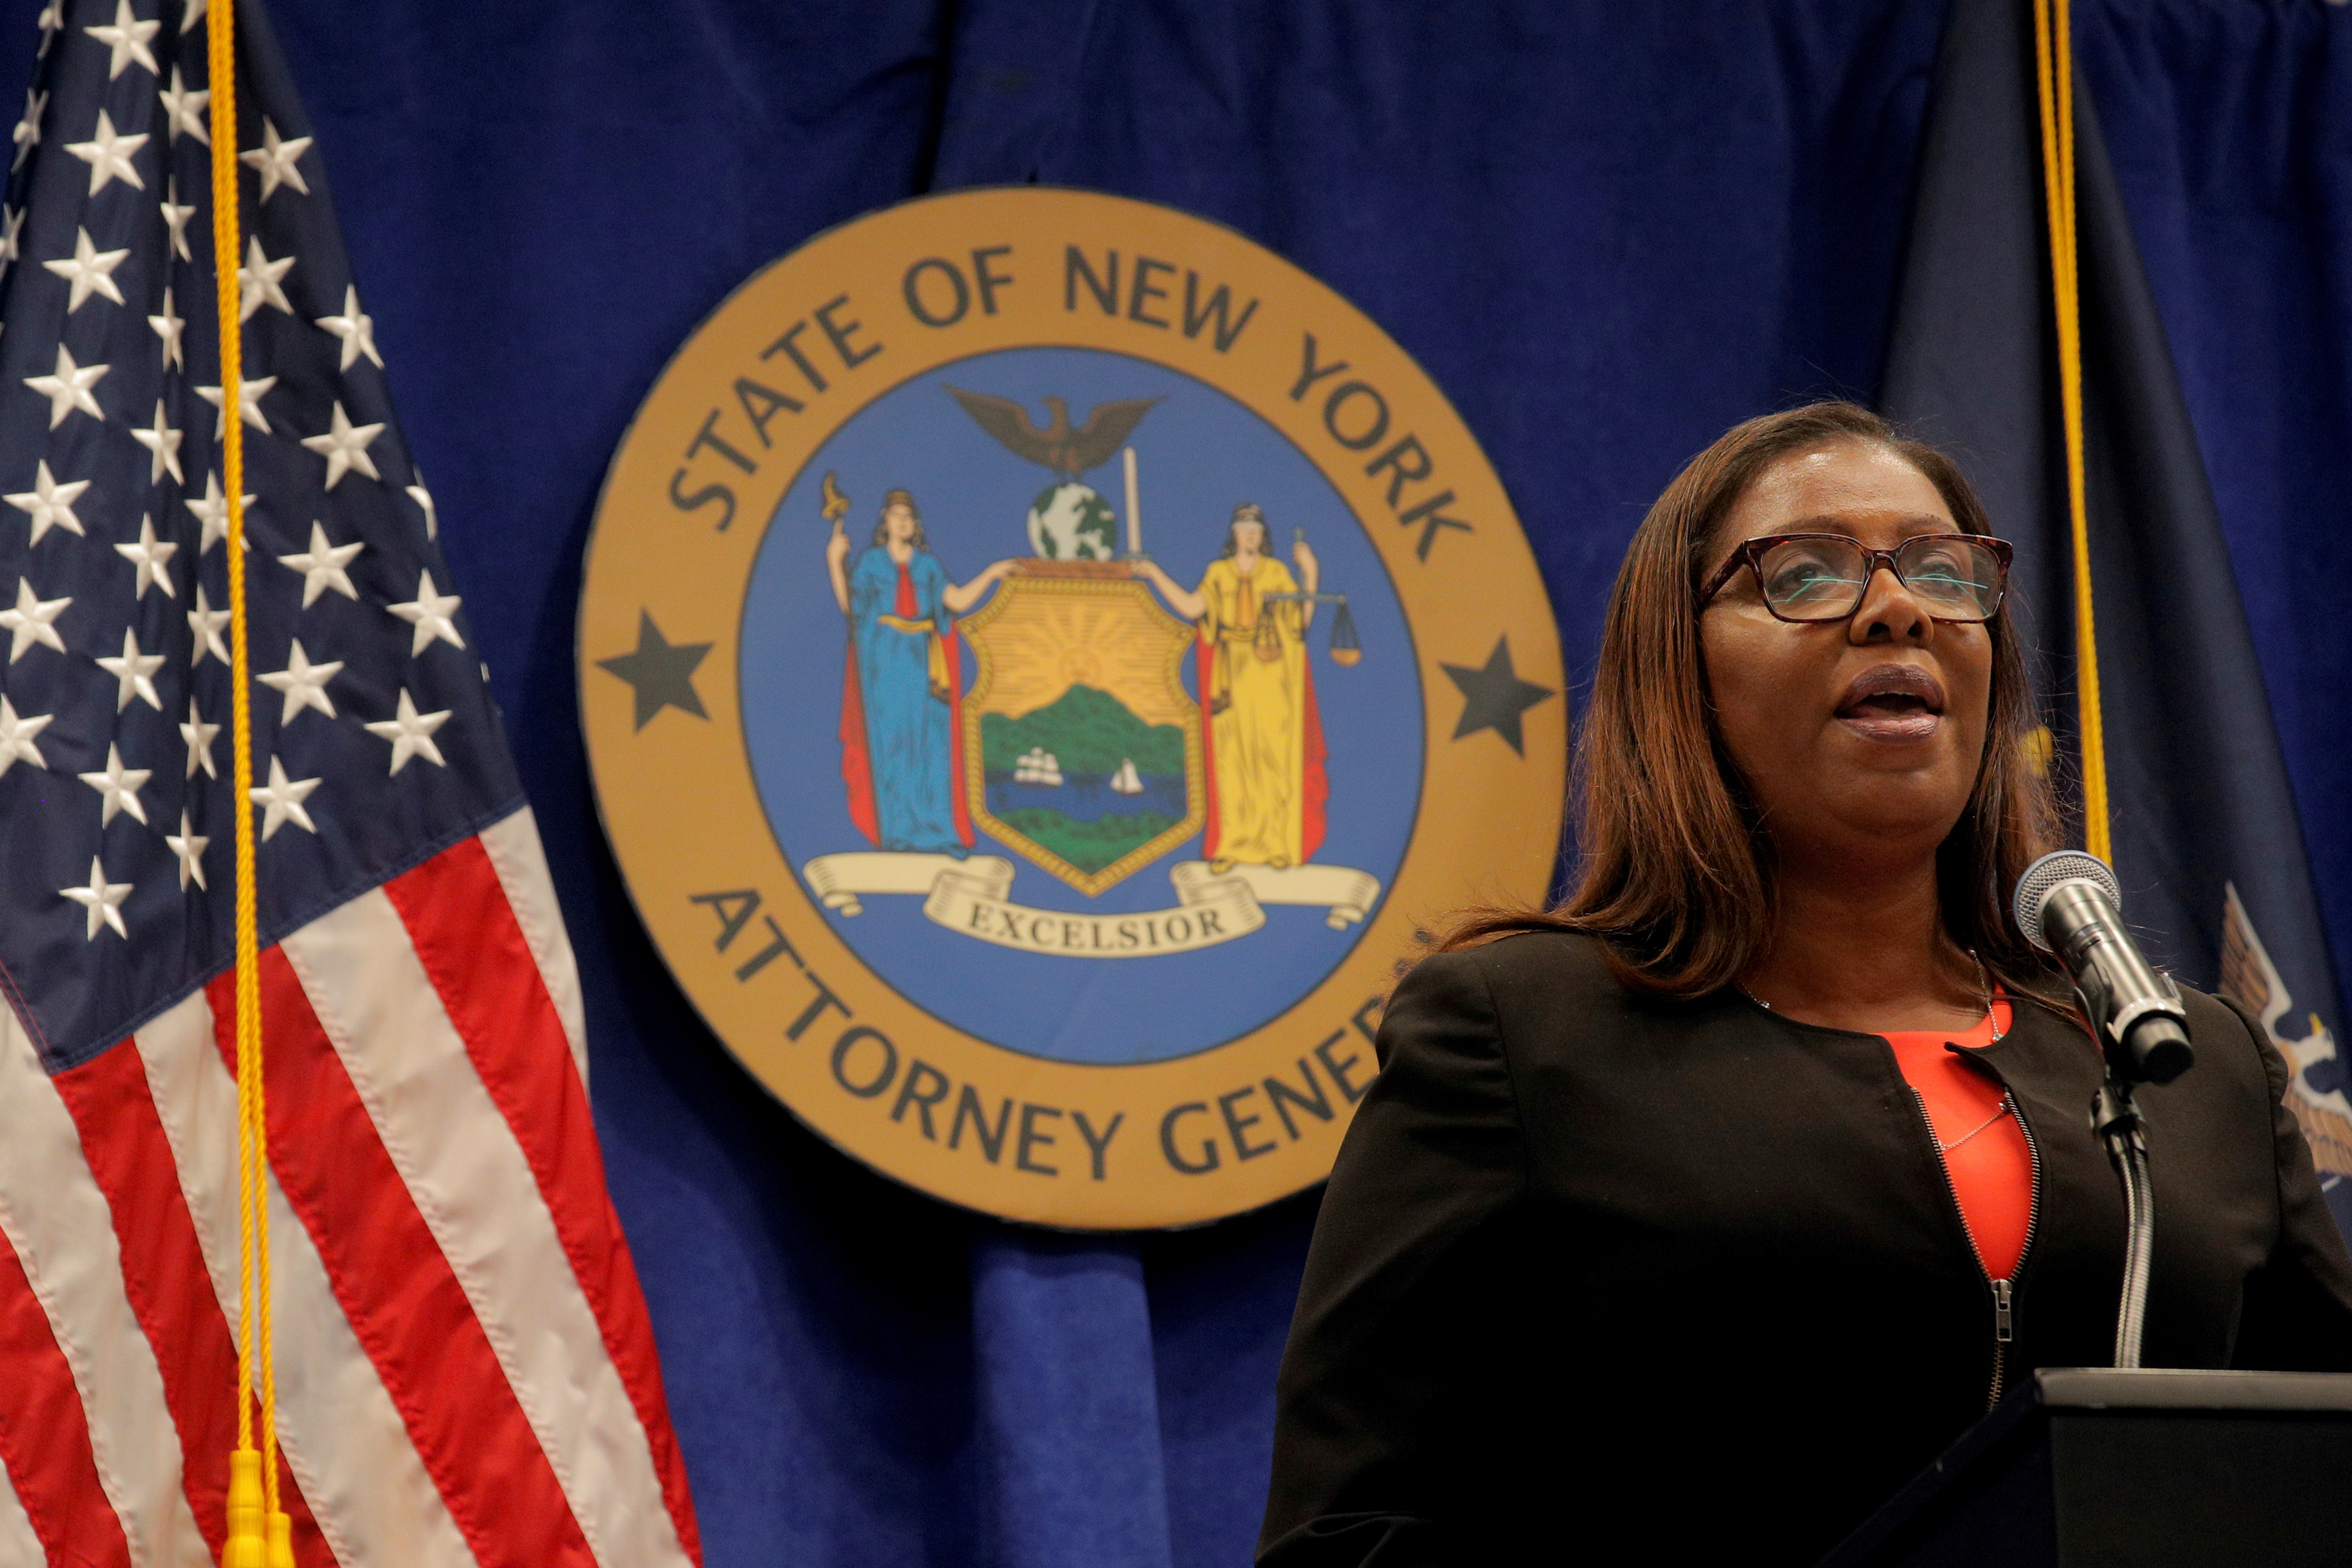 New York State Attorney General, Letitia James, speaks during a news conference, to announce a suit to dissolve the National Rifle Association, In New York, U.S., August 6, 2020. REUTERS/Brendan McDermid/File Photo